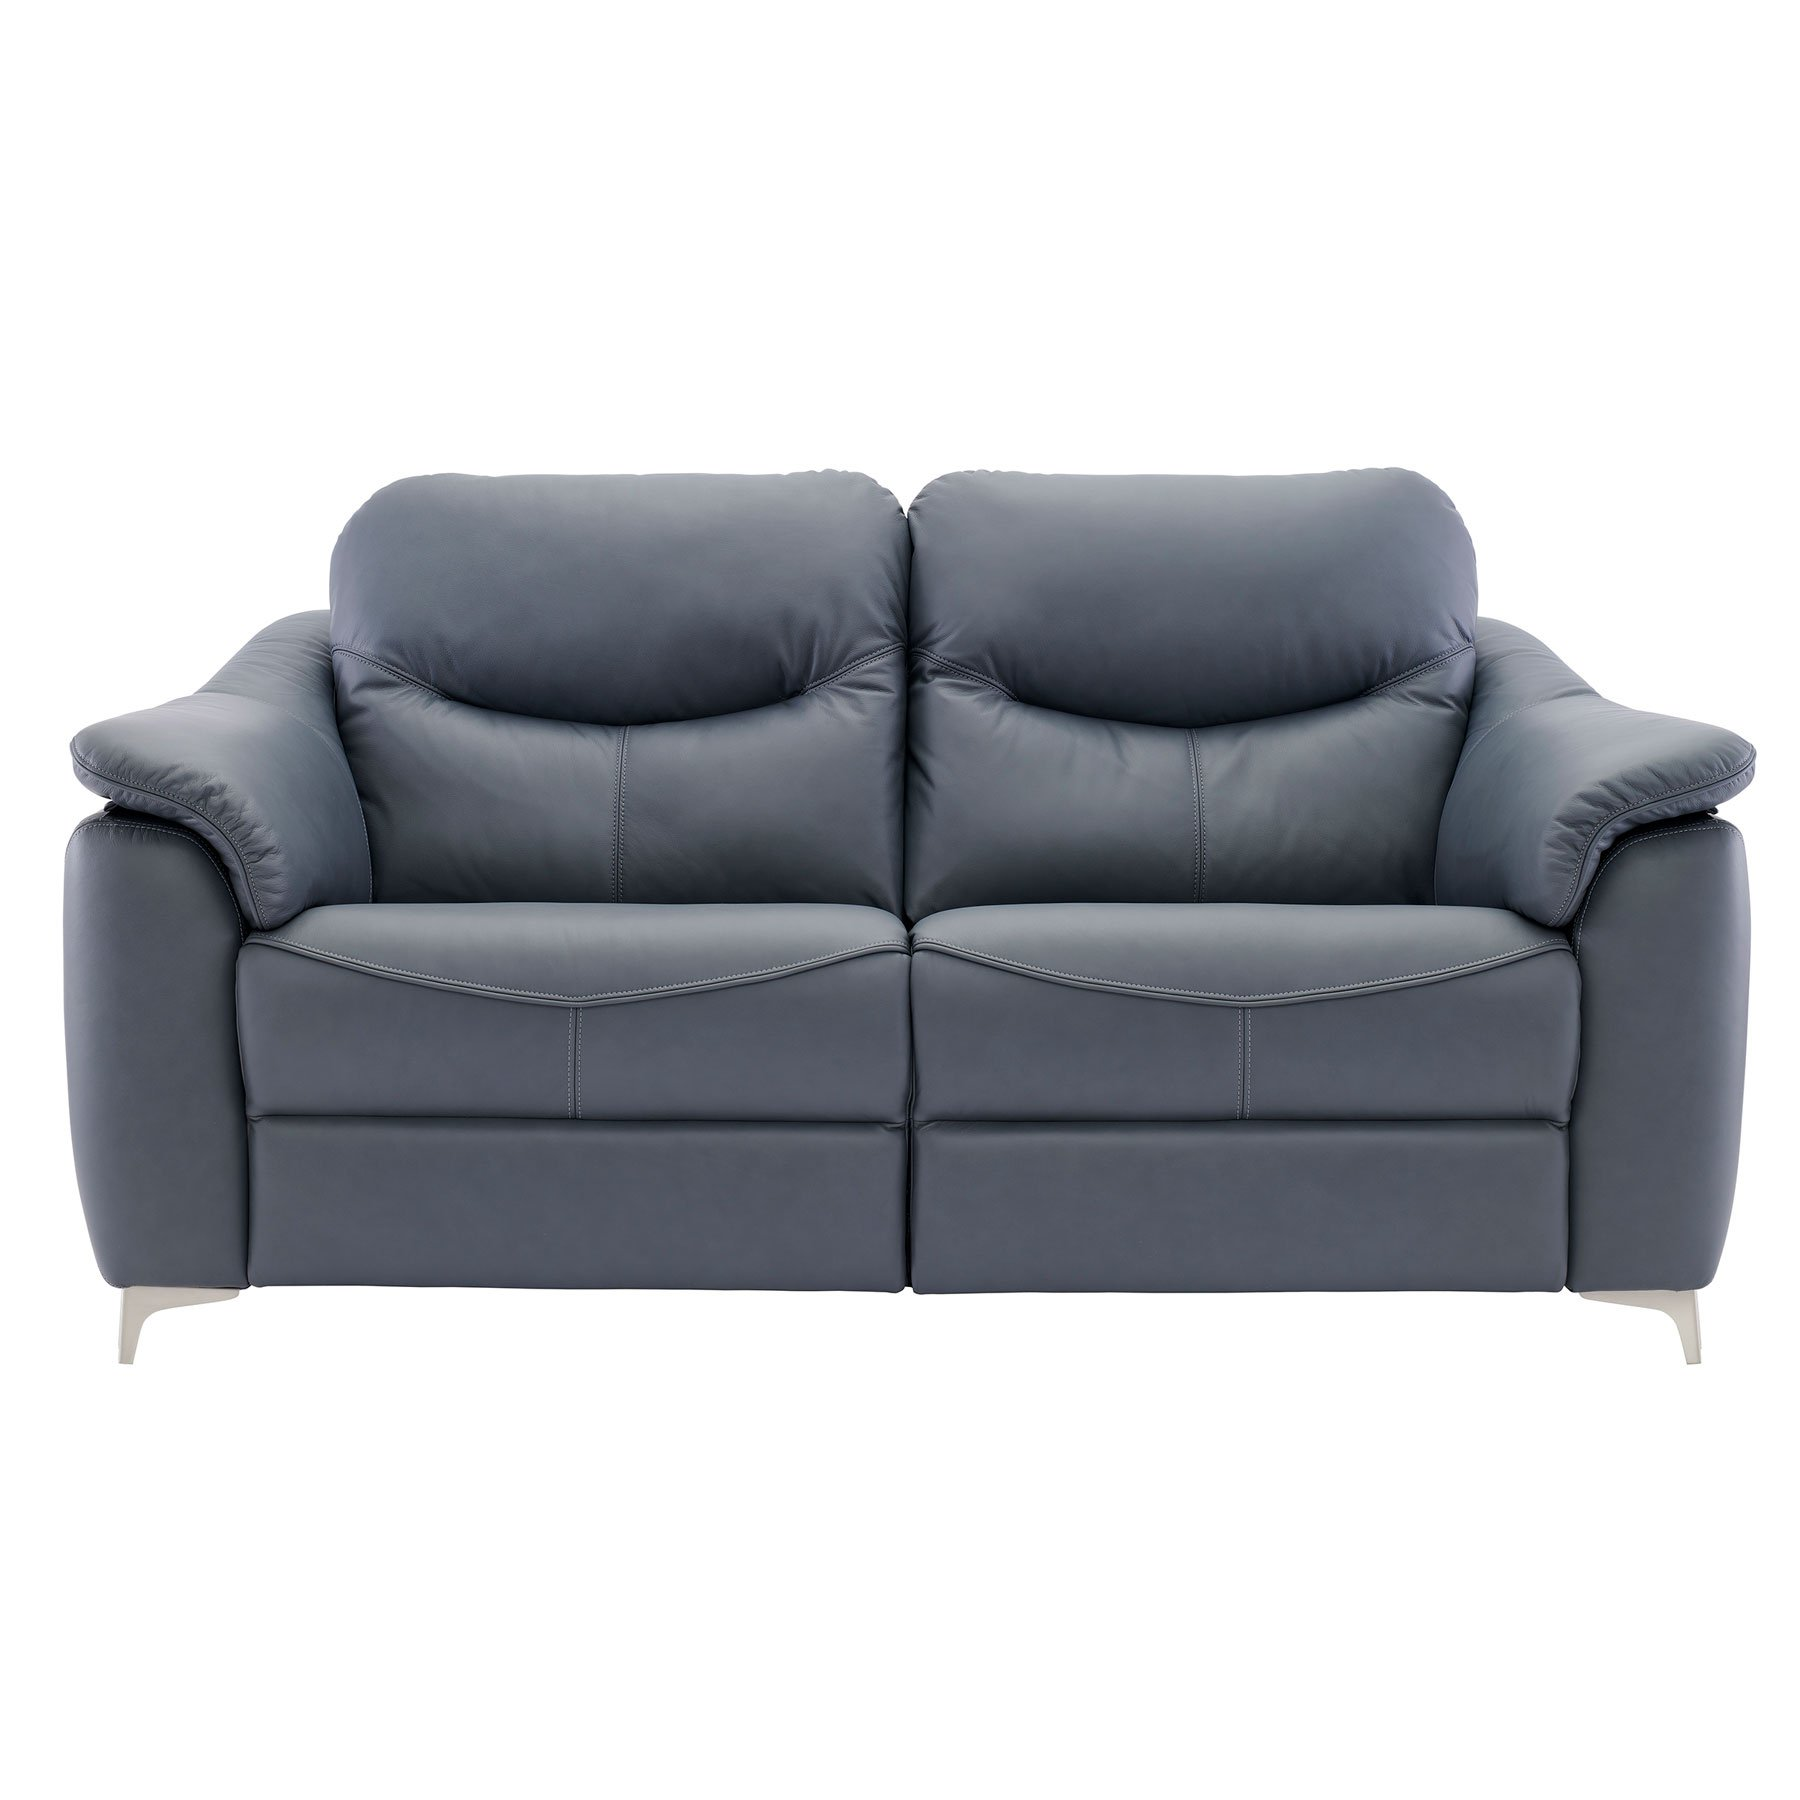 G Plan Jackson Leather Recliner Sofa Chair Footstool Collection